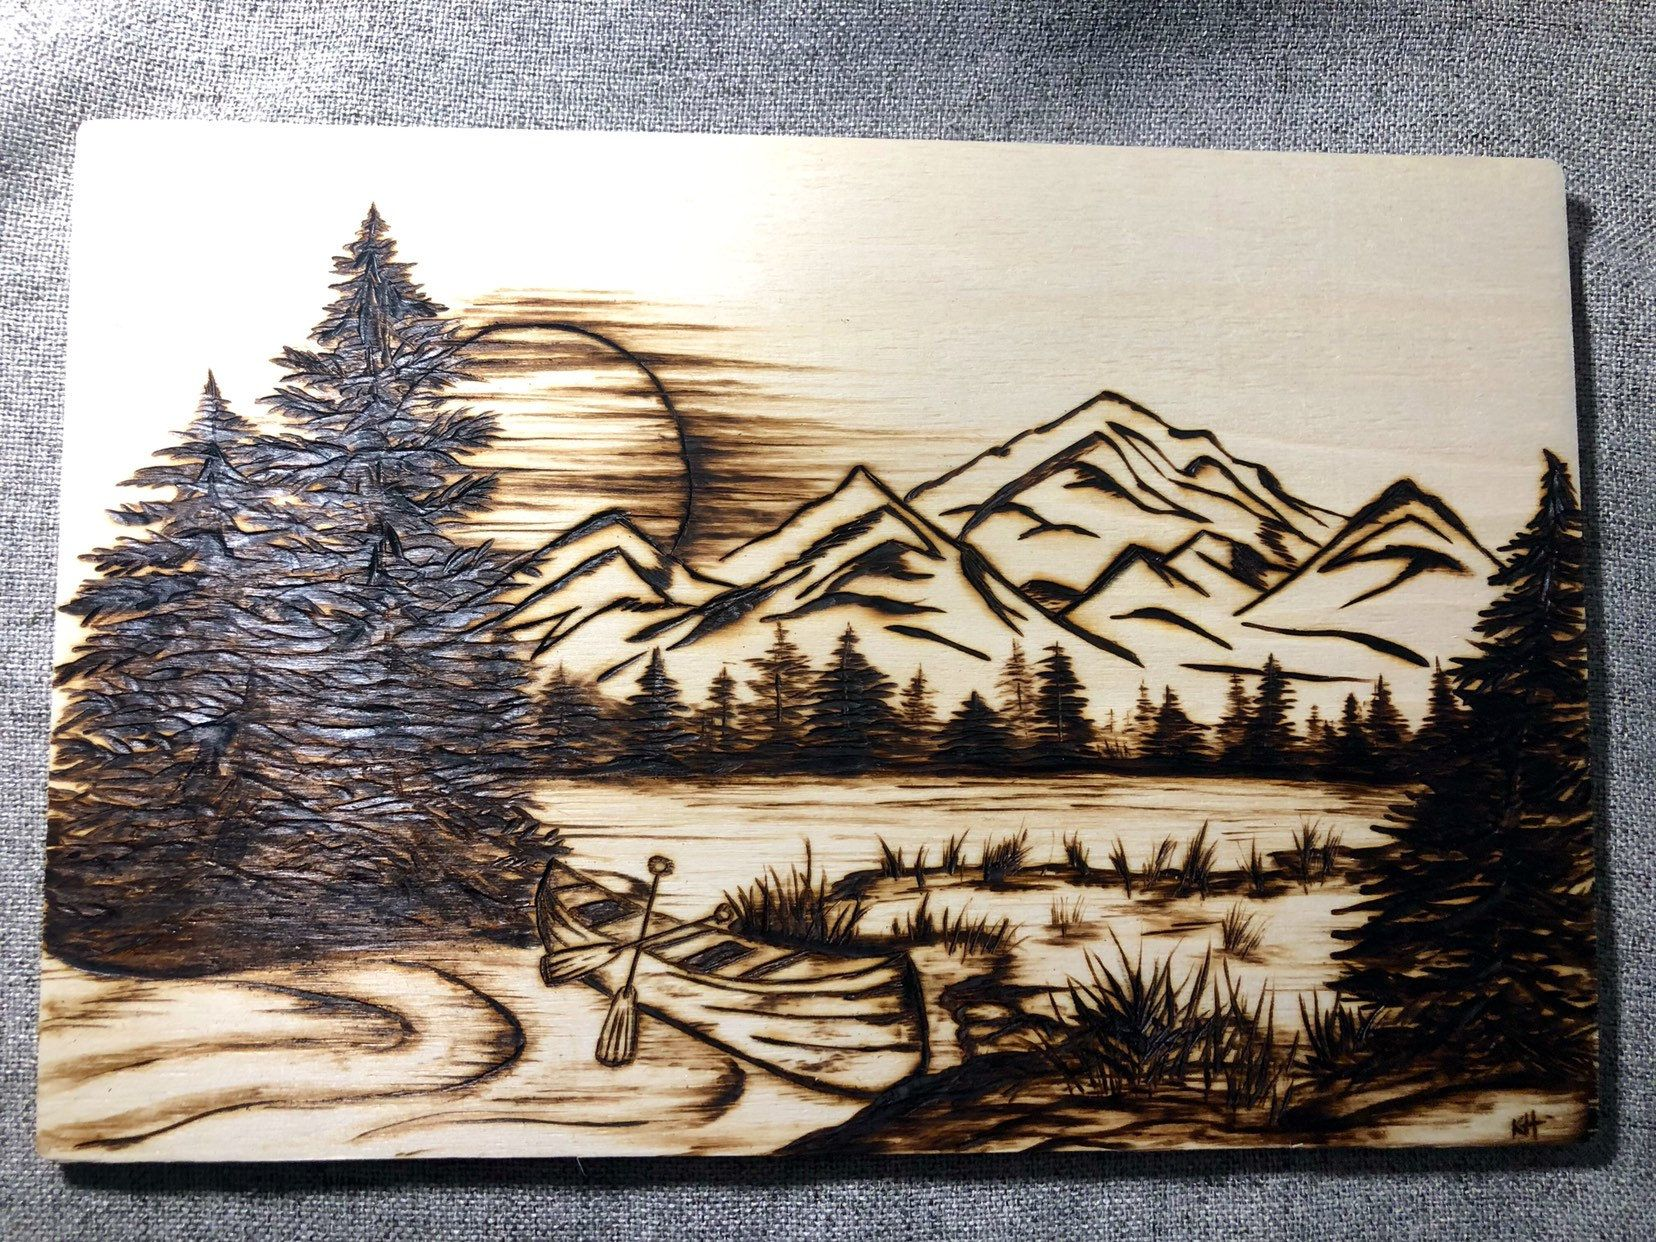 Pin By Gerrie Good On Wood Burning In 2020 Wood Burning Art Wood Art Diy Wood Burning Techniques